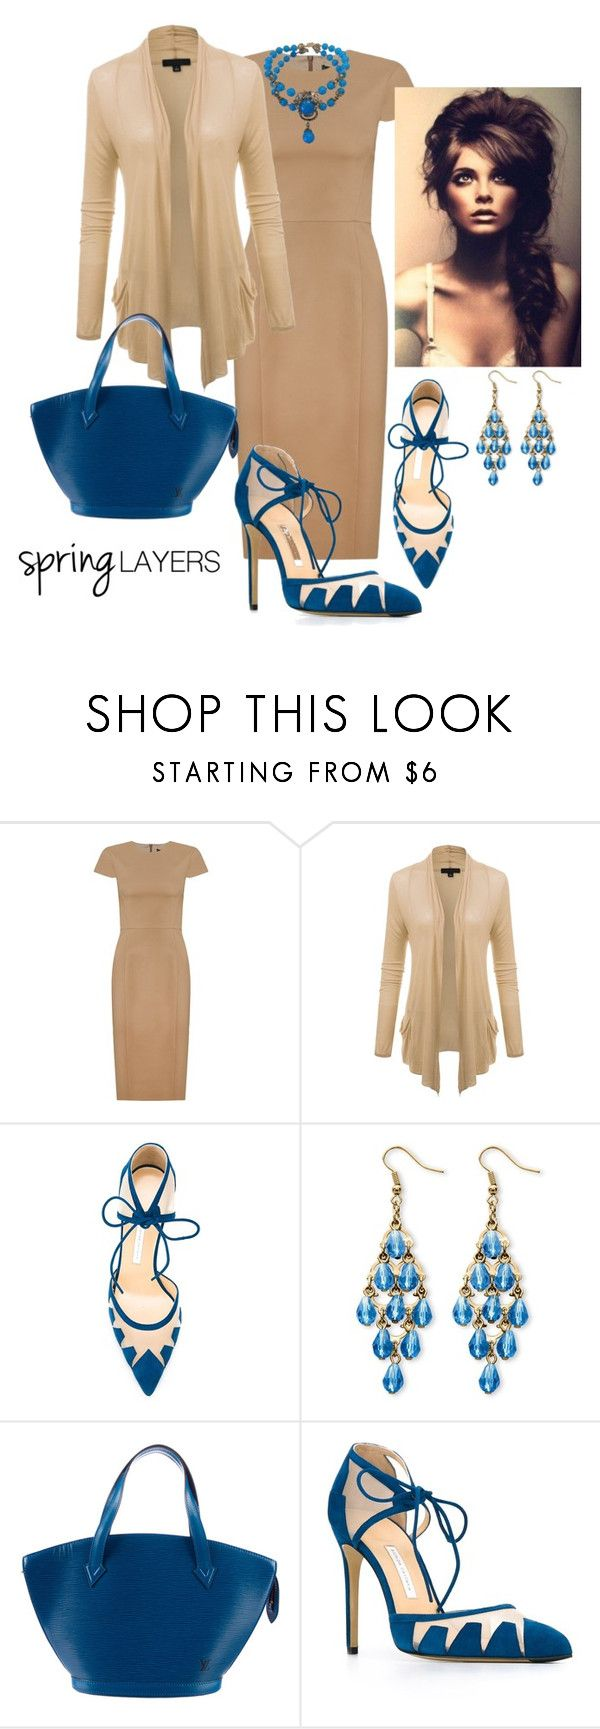 """Cool Spring Night"" by paperdollsq ❤ liked on Polyvore featuring Andrea Marques, Bionda Castana, Palm Beach Jewelry, Louis Vuitton, Miriam Haskell, contestentry, cutecardigan and springlayers"